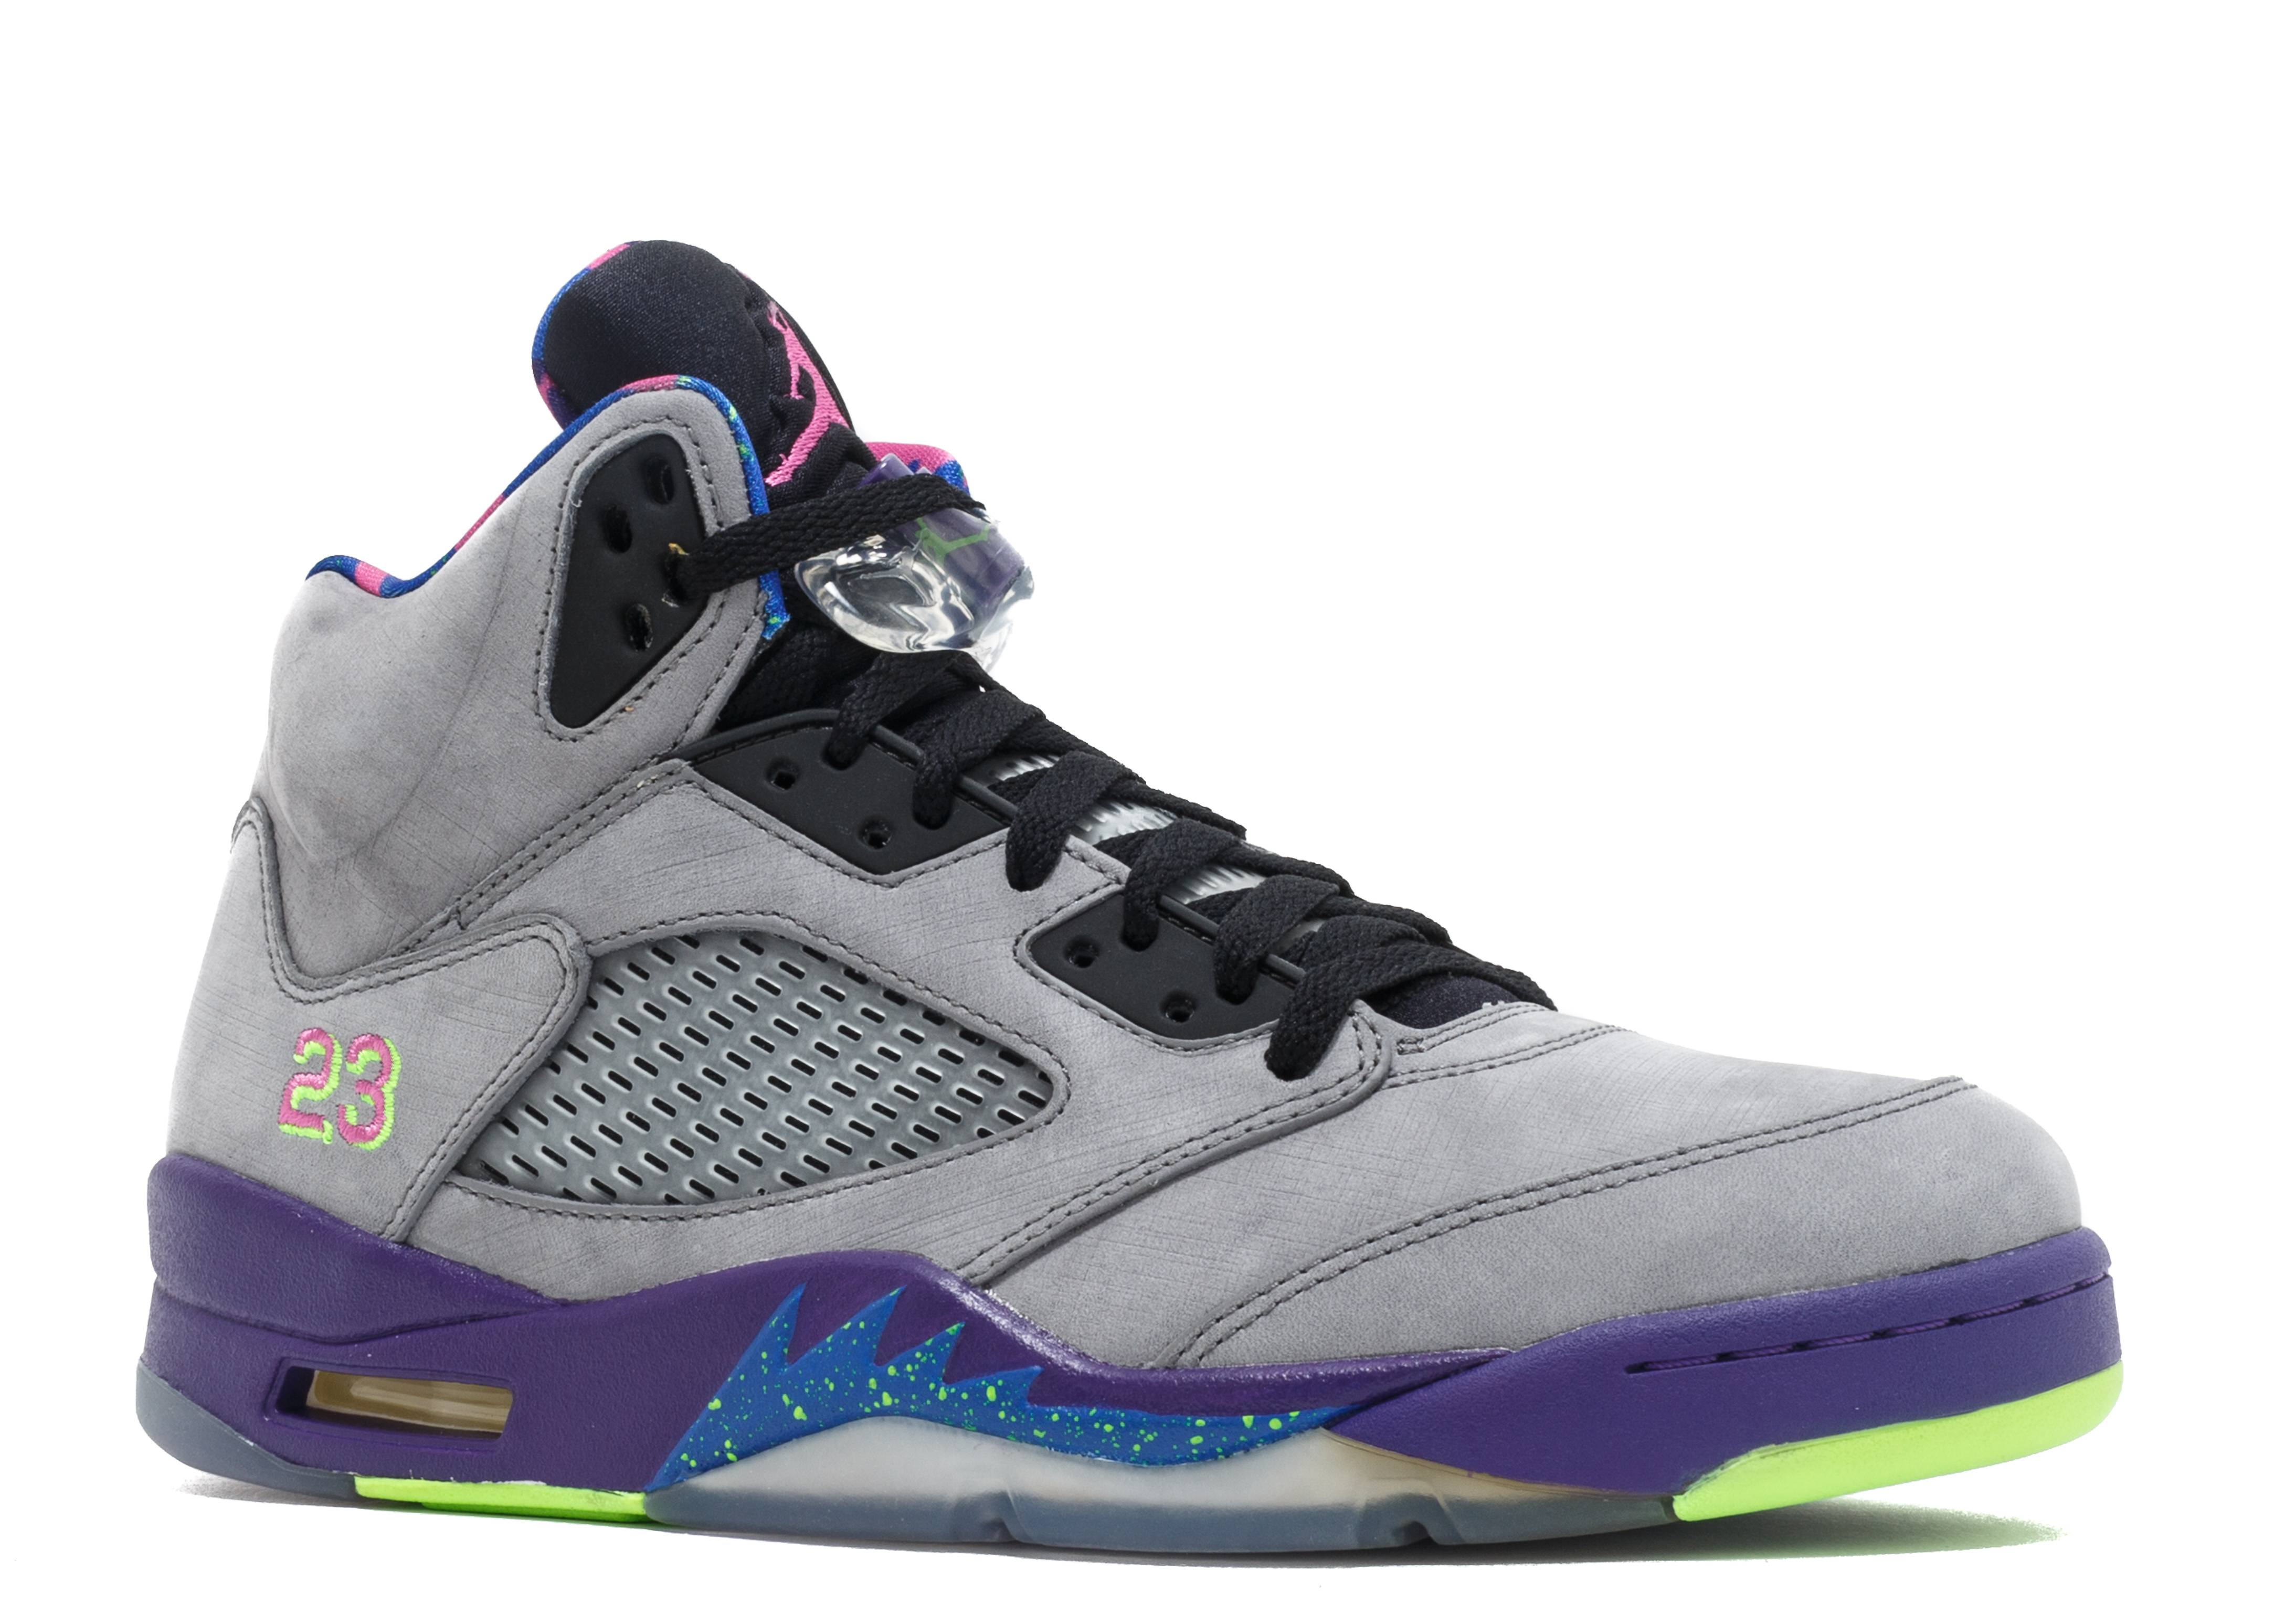 air jordan 5 retro bel air air jordan 621958 090 cl gry clb pnk crt prpl gm ryl flight club